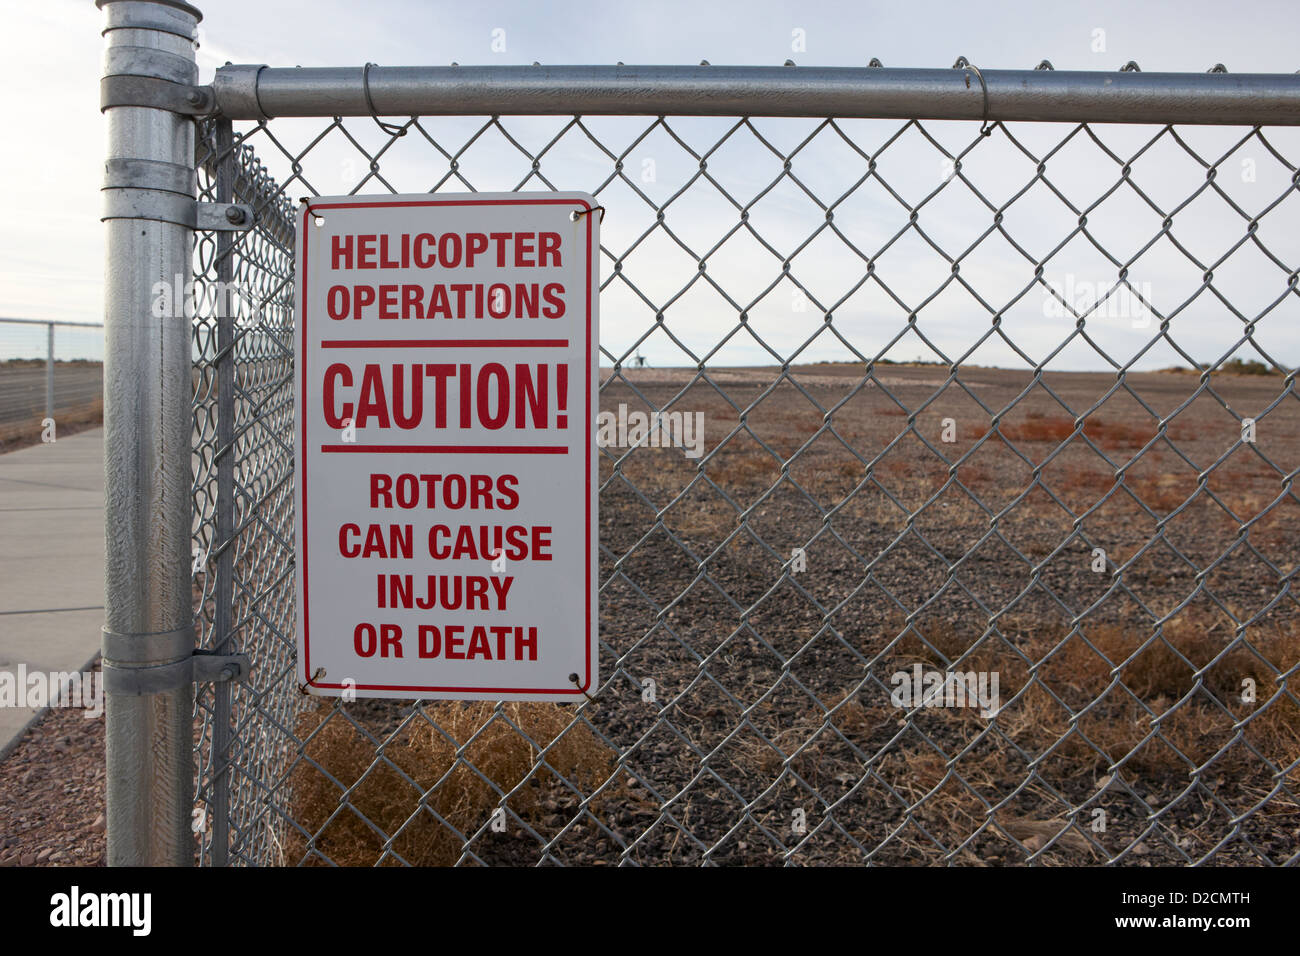 helicopter operation safety signs at Grand canyon west airport Arizona USA - Stock Image